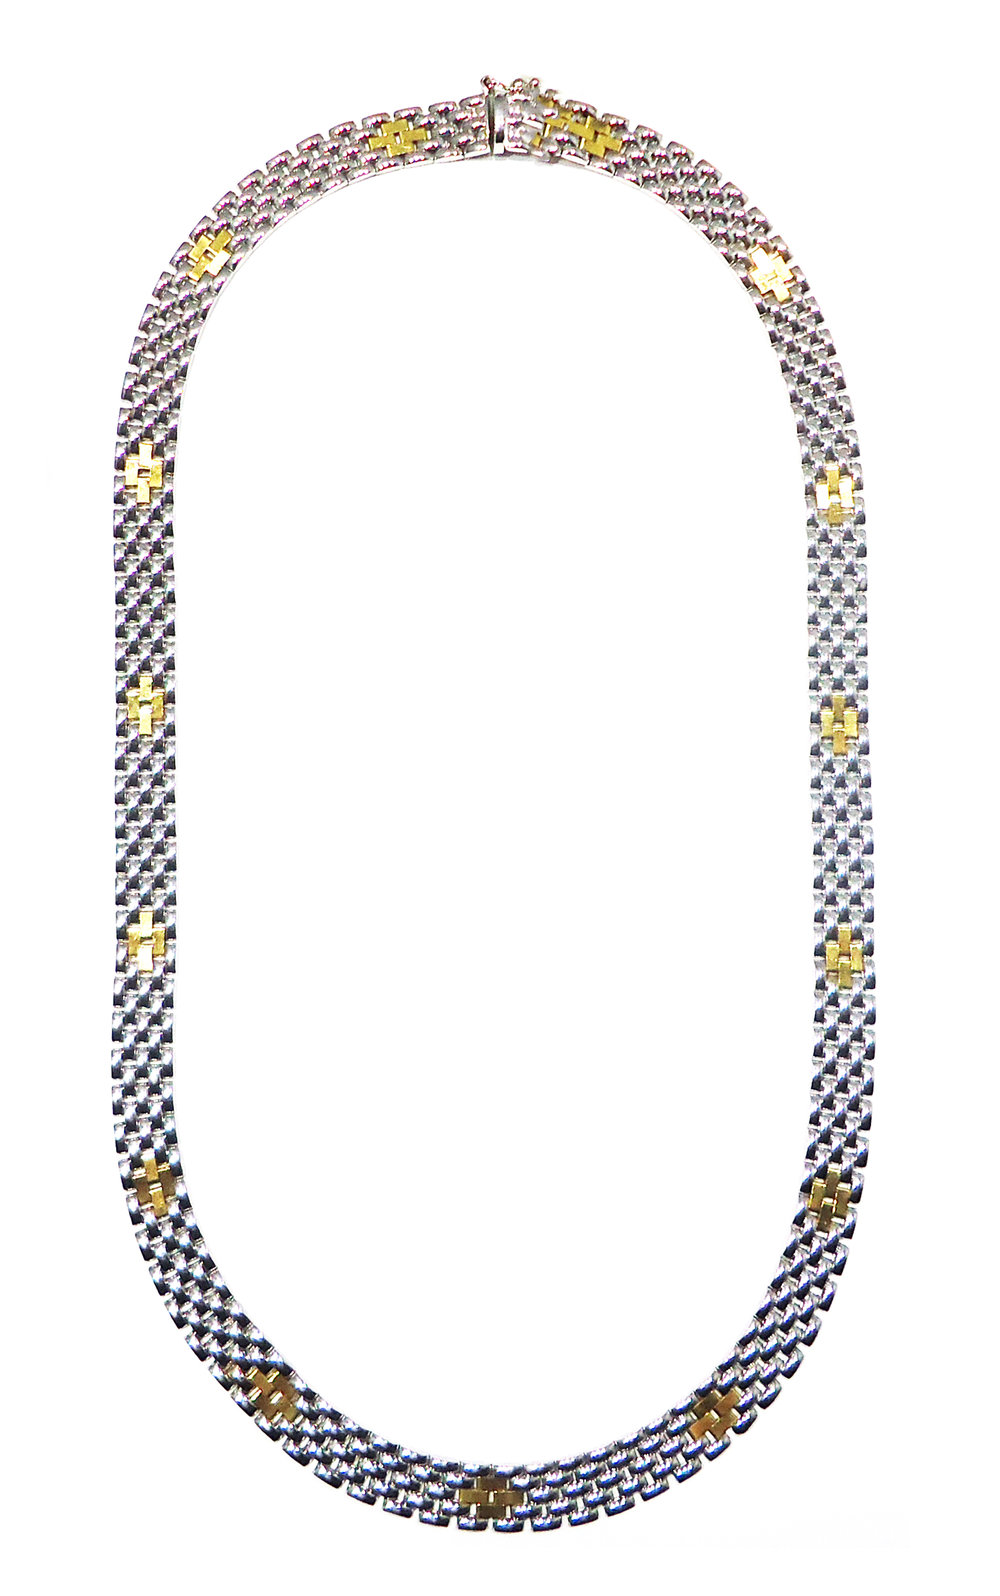 White and yellow gold necklace!